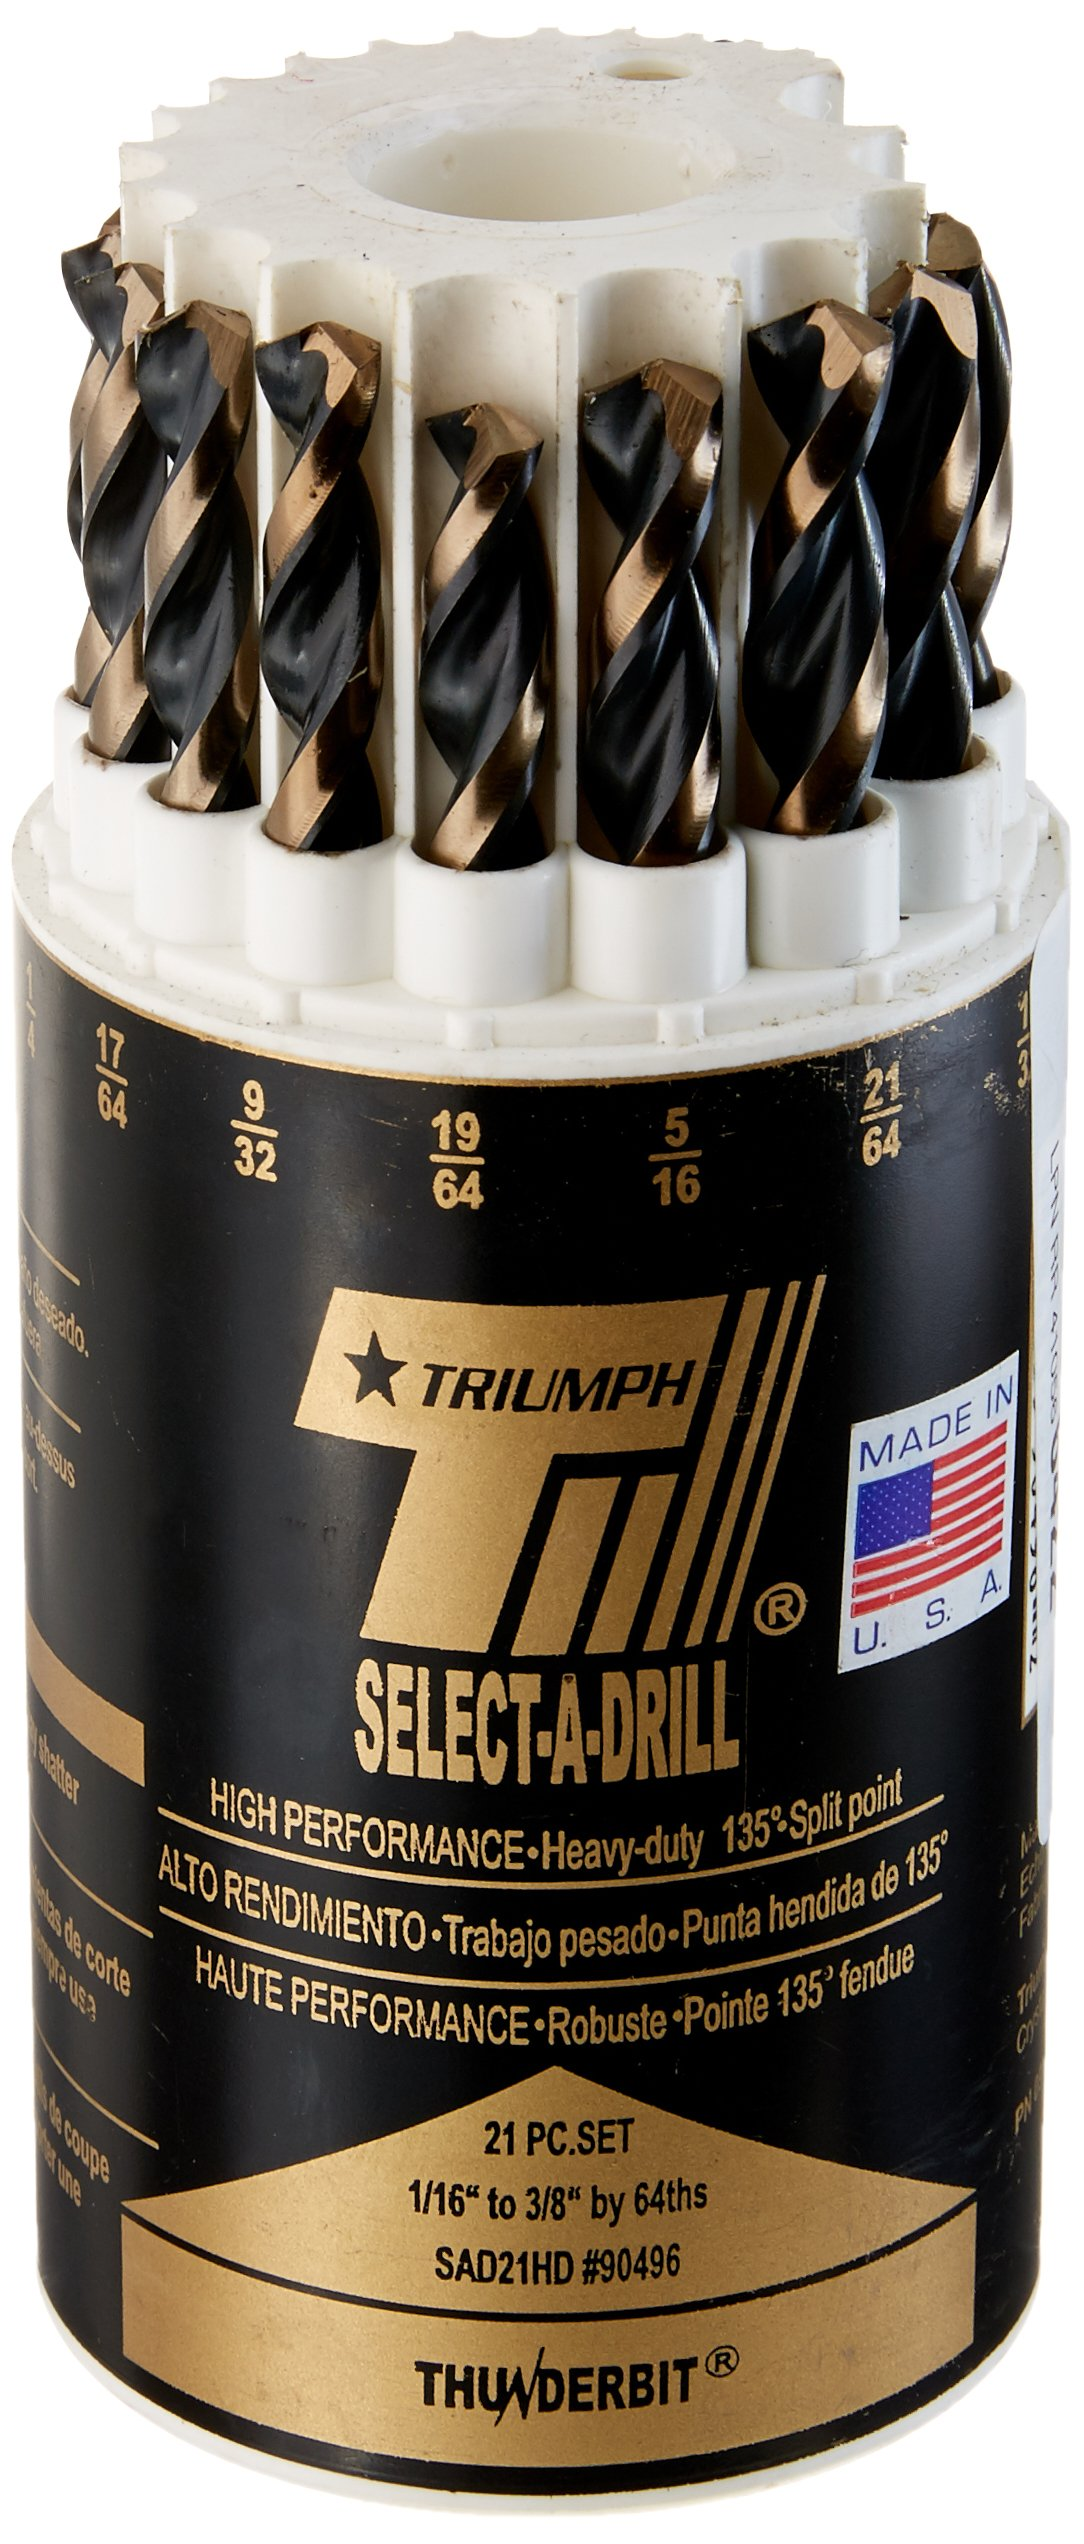 Triumph Twist Drill Co. 090496 SAD21HD Size Ranger 1/16-Inch-3/8-Inch by 64ths High Speed Steel Drill Set, Black and Bronze Oxide Coated, 1-Pack